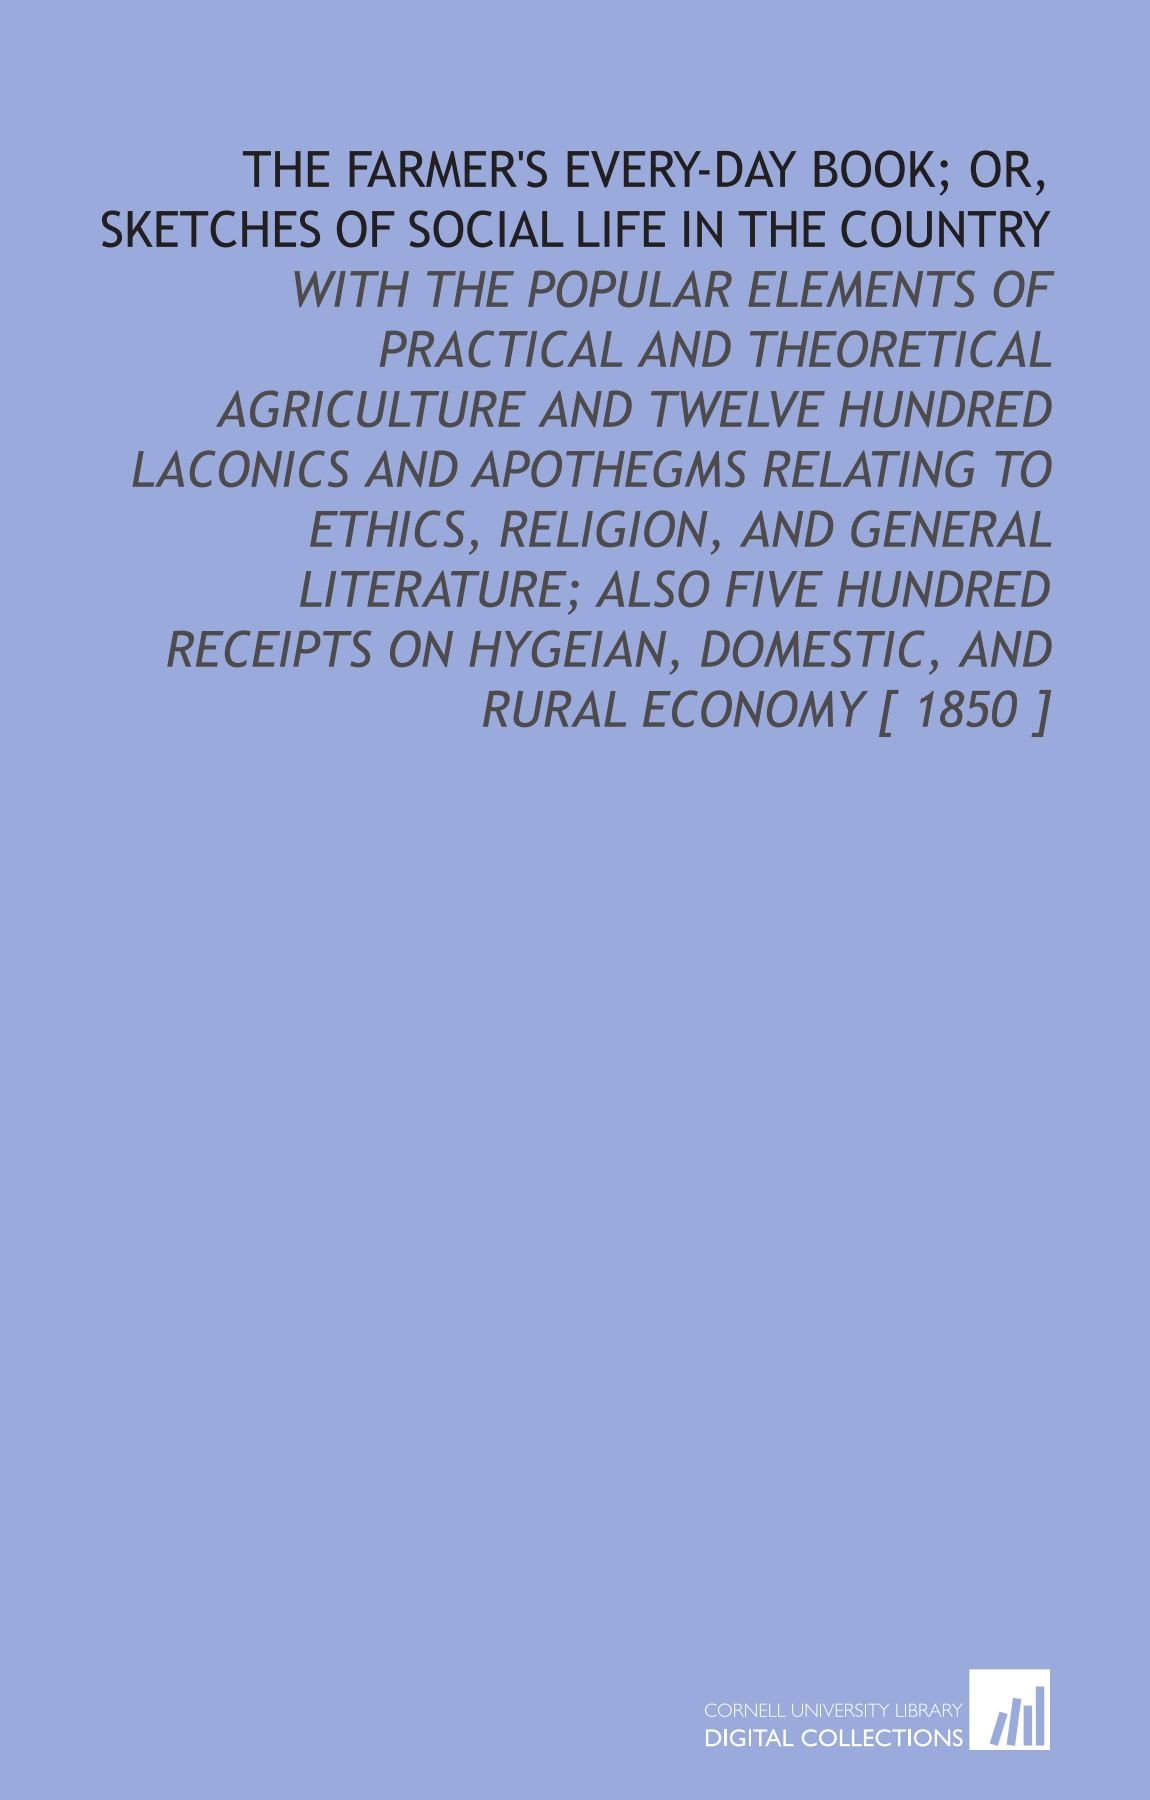 The Farmers Every-Day Book; or, Sketches of Social Life in the Country: With the Popular Elements of Practical and Theoretical Agriculture and Twelve .